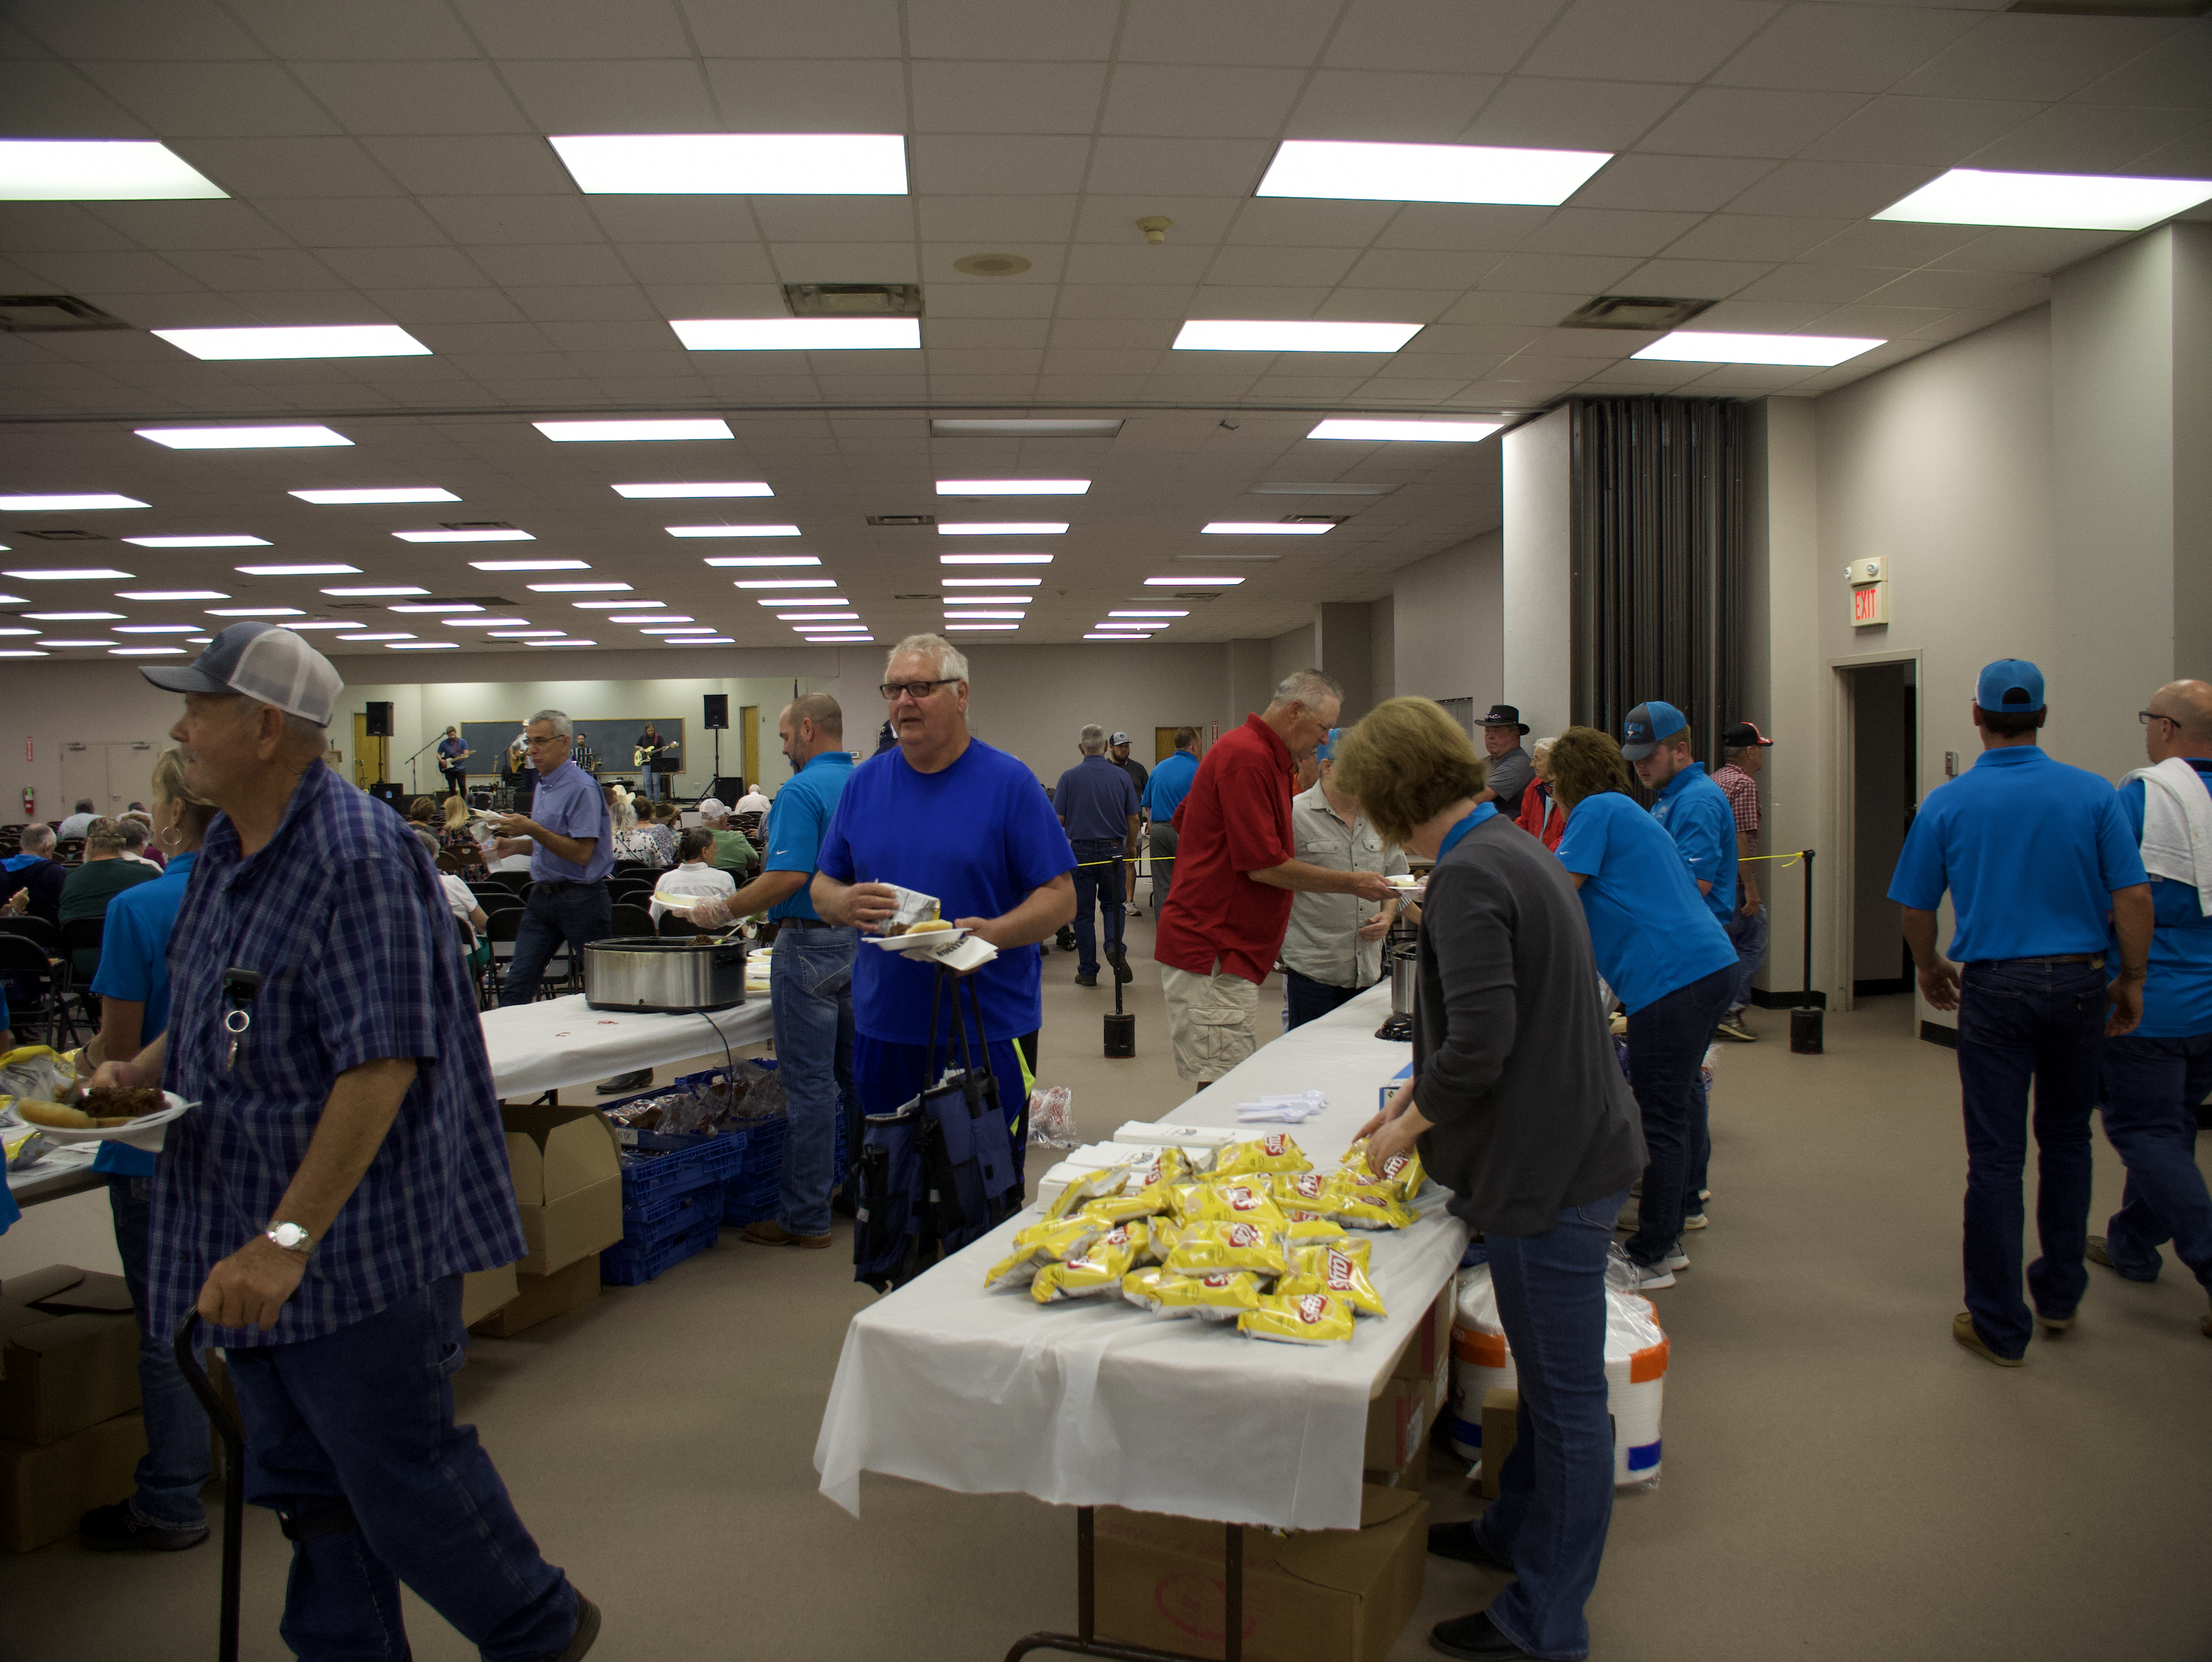 people getting food at the annual meeting